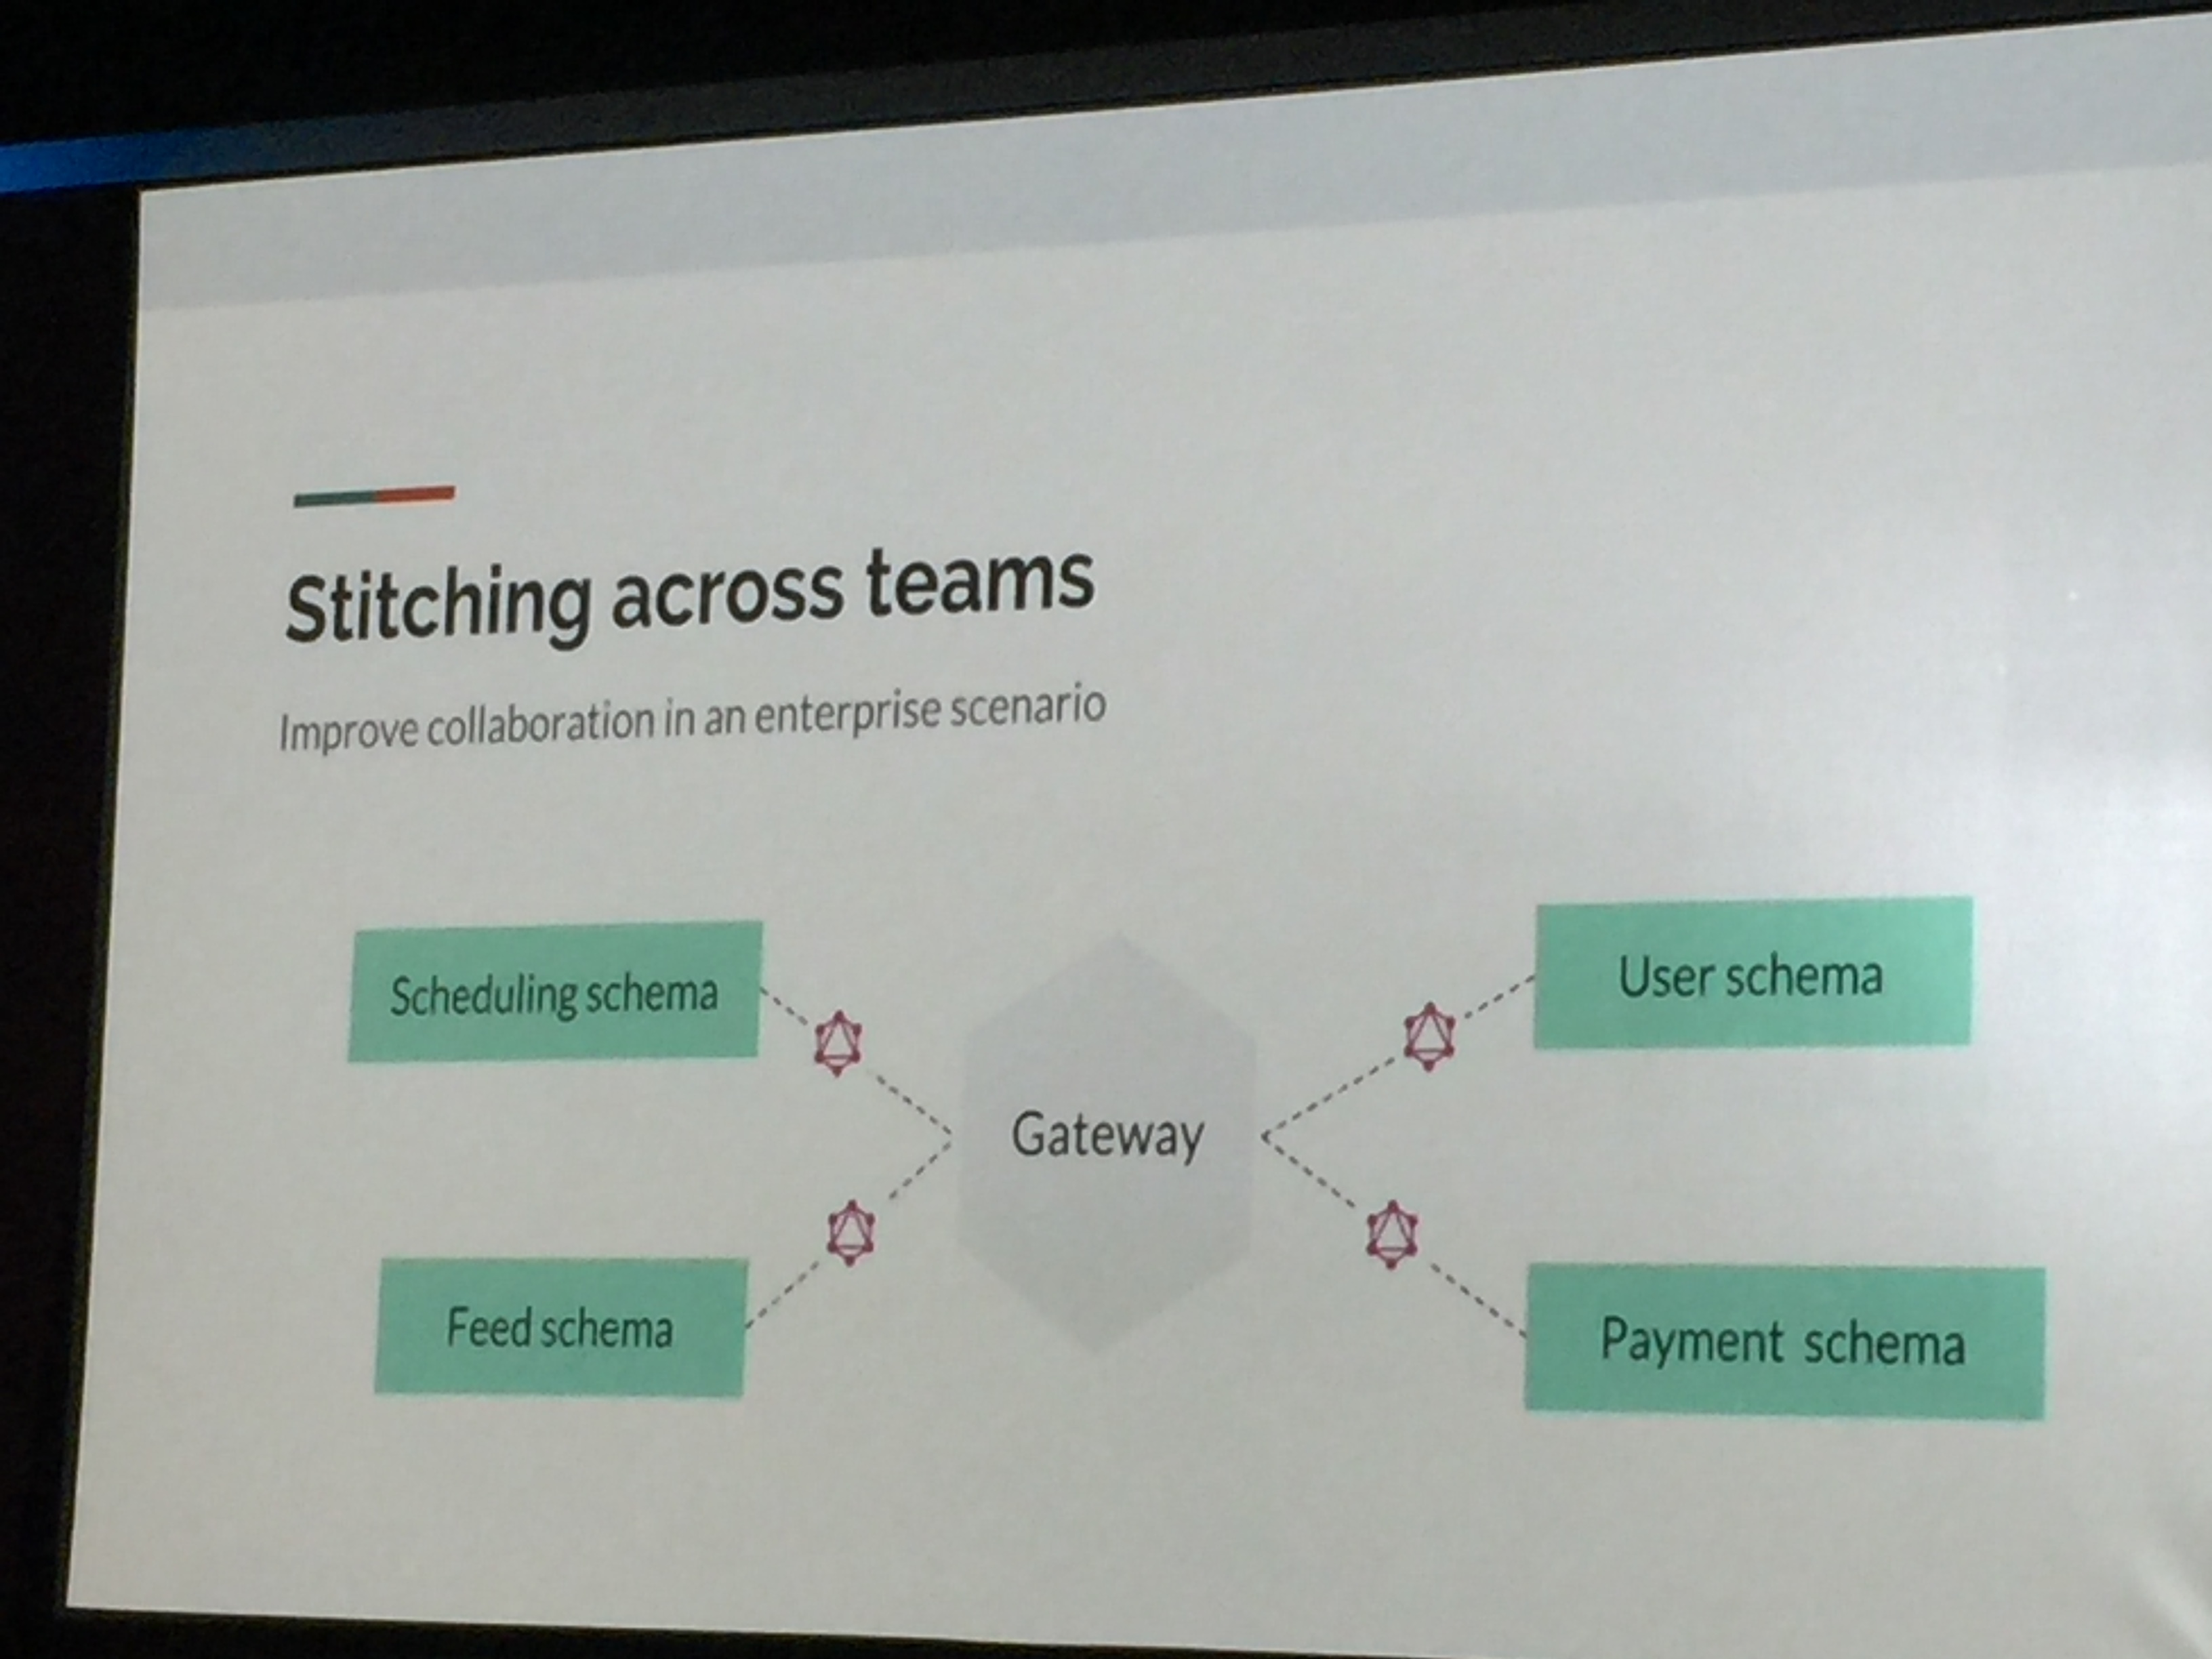 stitching-across-teams